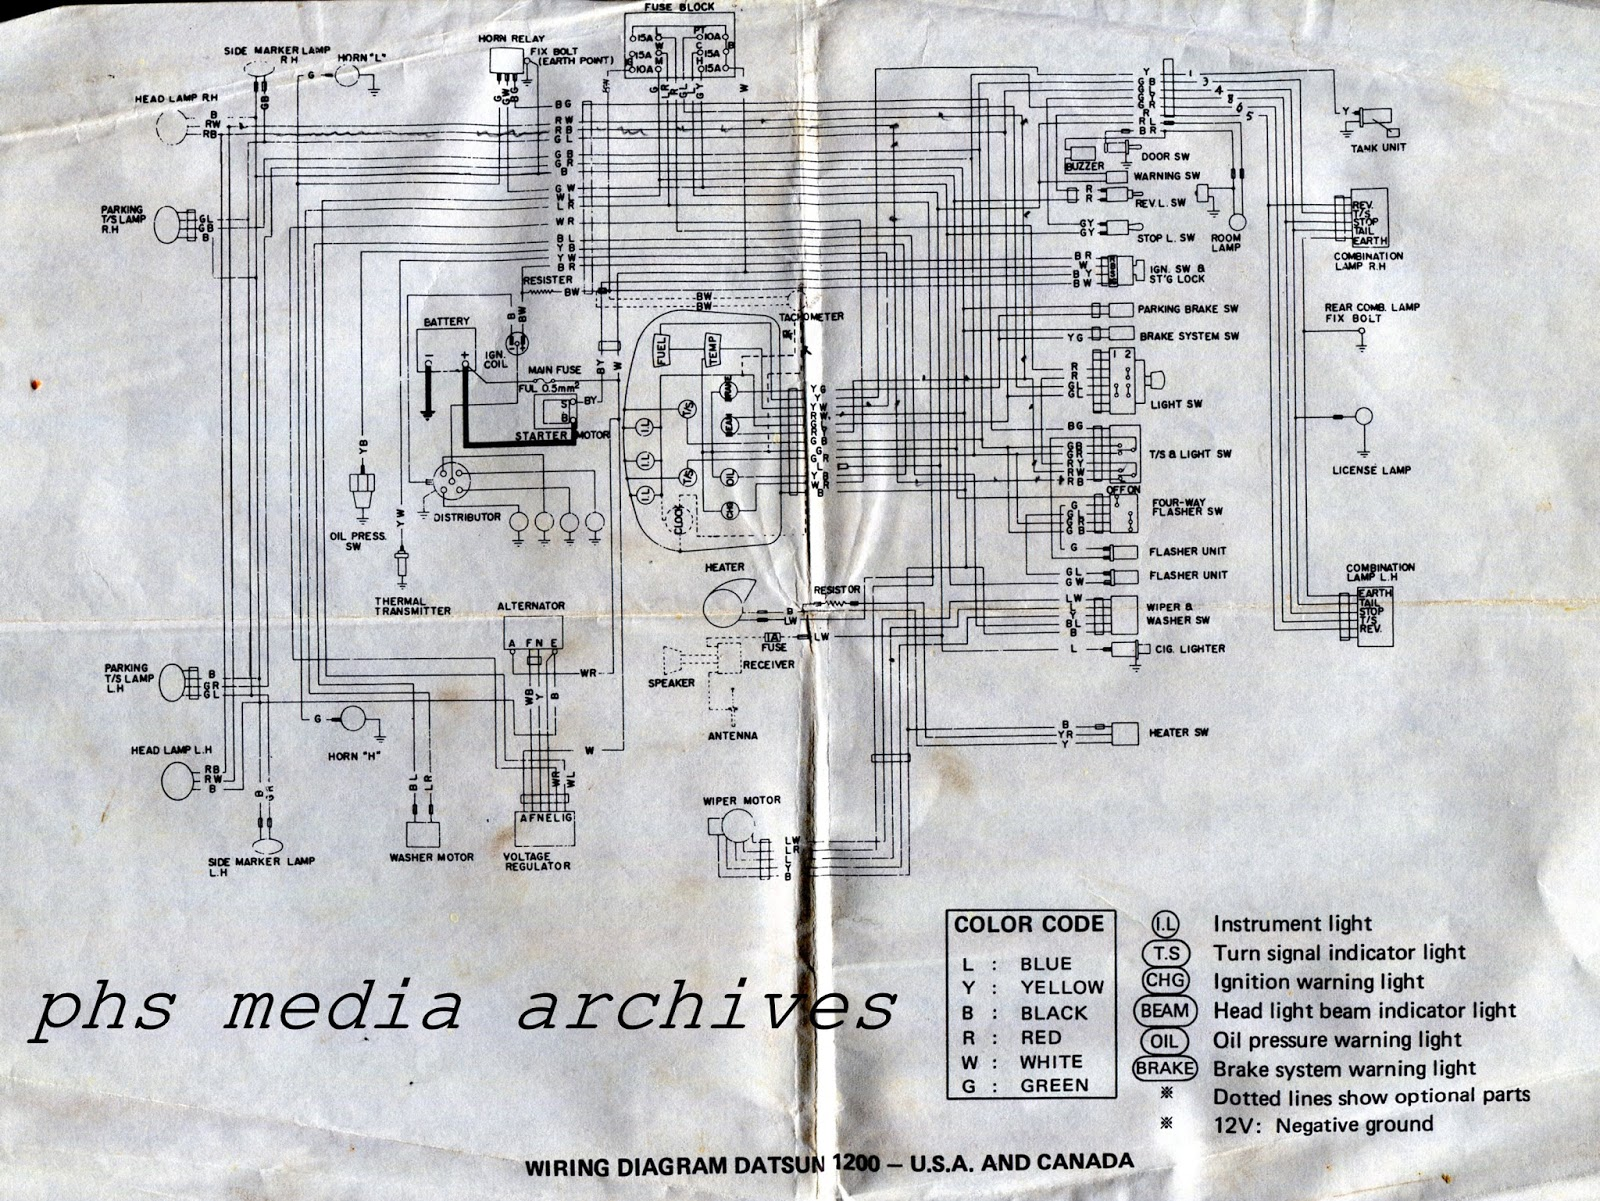 1971 Pontiac Wiring Diagrams Layout Lemans Fuse Box Series 72 Datsun 1200 Rh Phscollectorcarworld Blogspot Com Grand Prix Diagram